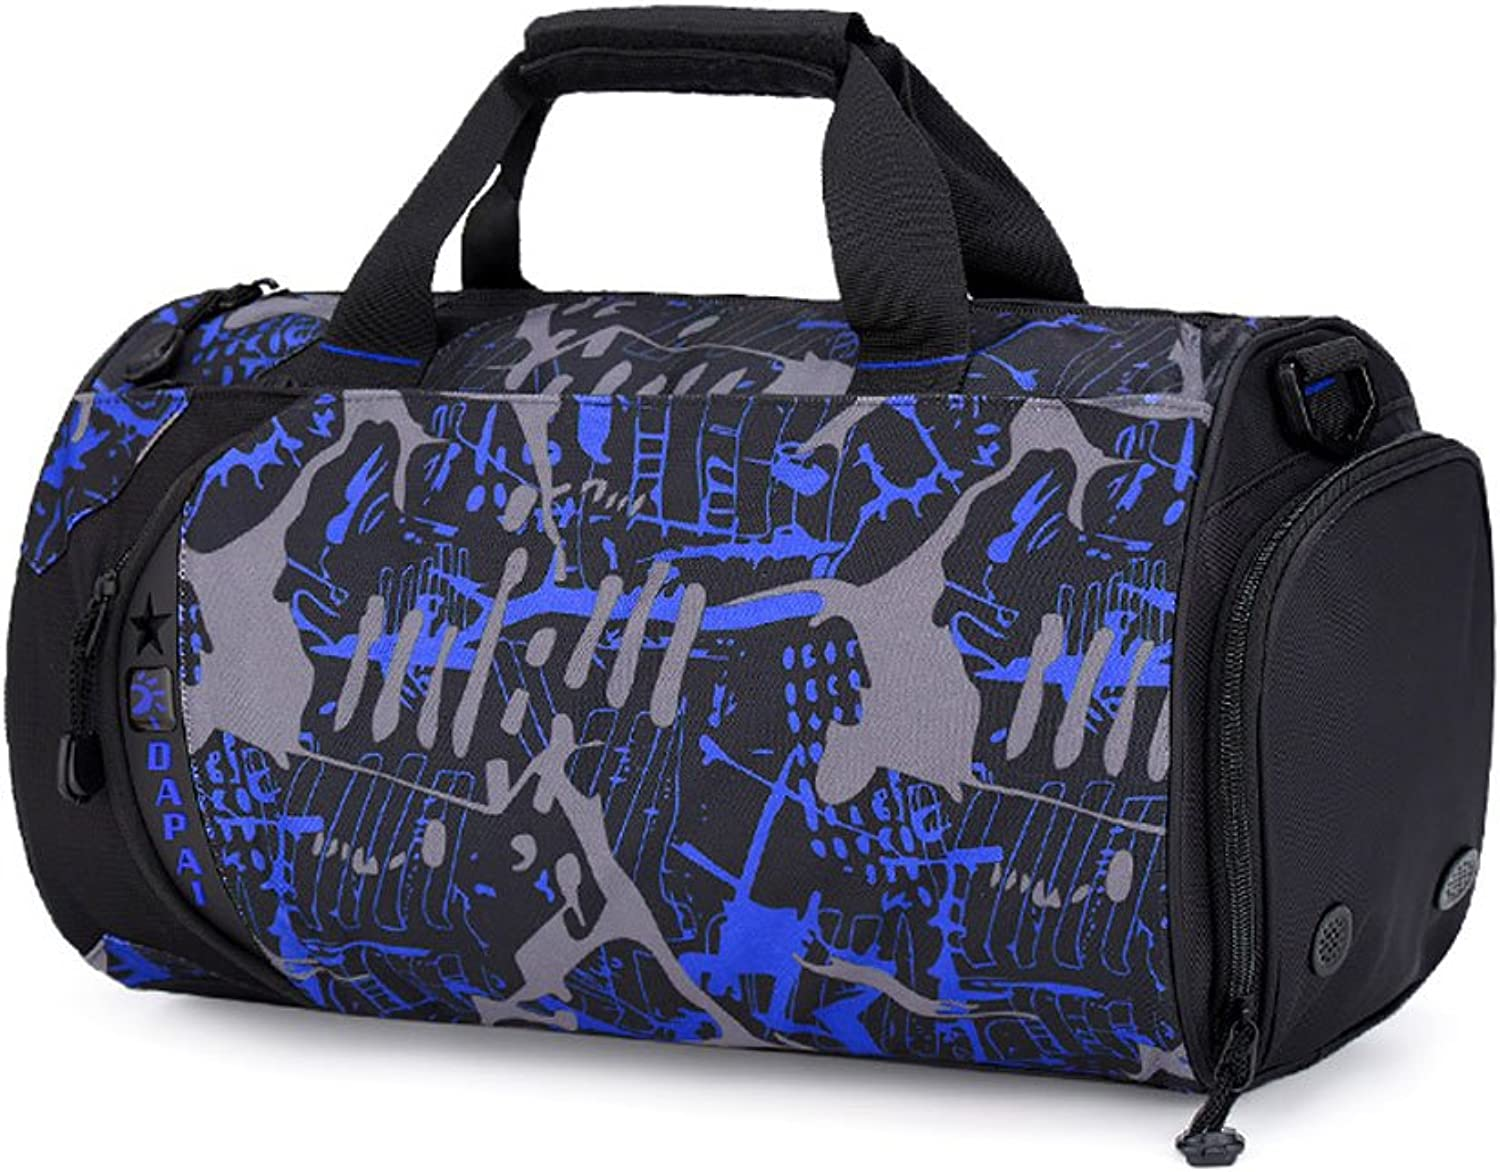 ZOUQILAI Outdoor LargeCapacity Leisure Travel Sports Fitness Oxford Bag Dry and Wet Separation Travel Bag Multicolor Selection